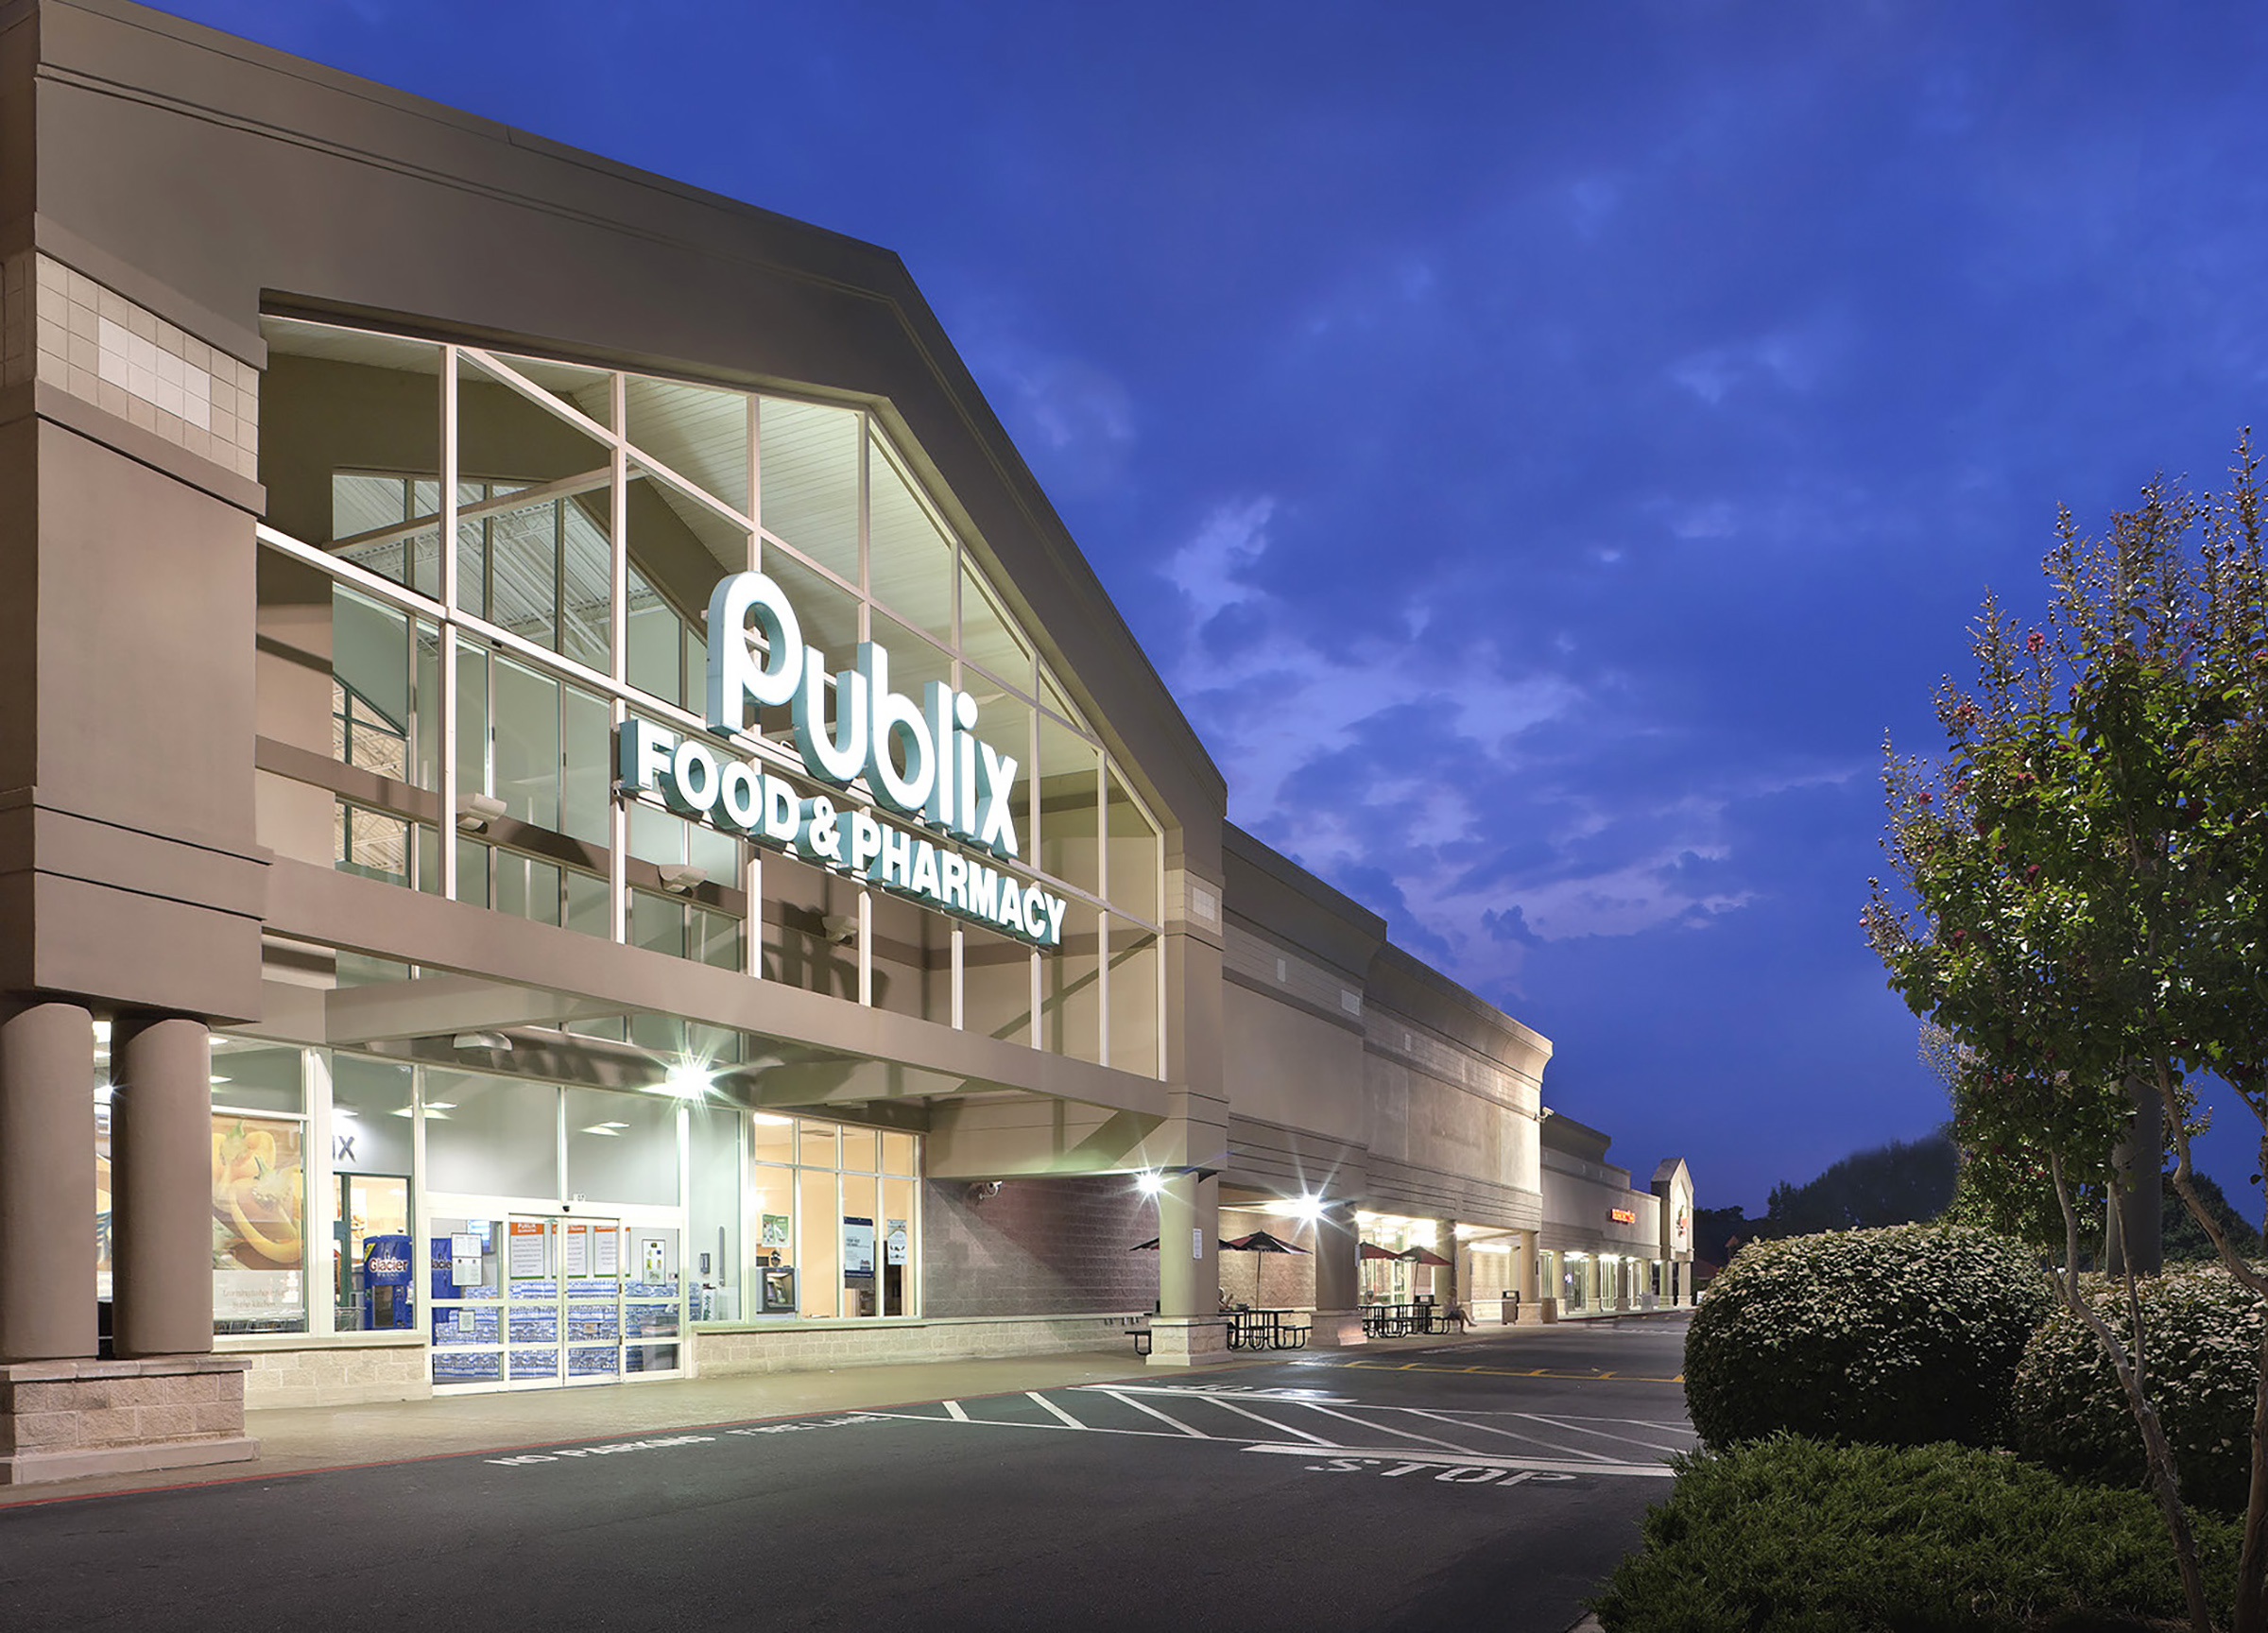 Hanley Investment Group Completes Sale of Publix-anchored Shopping Center in Atlanta Metro for $24.6 Million